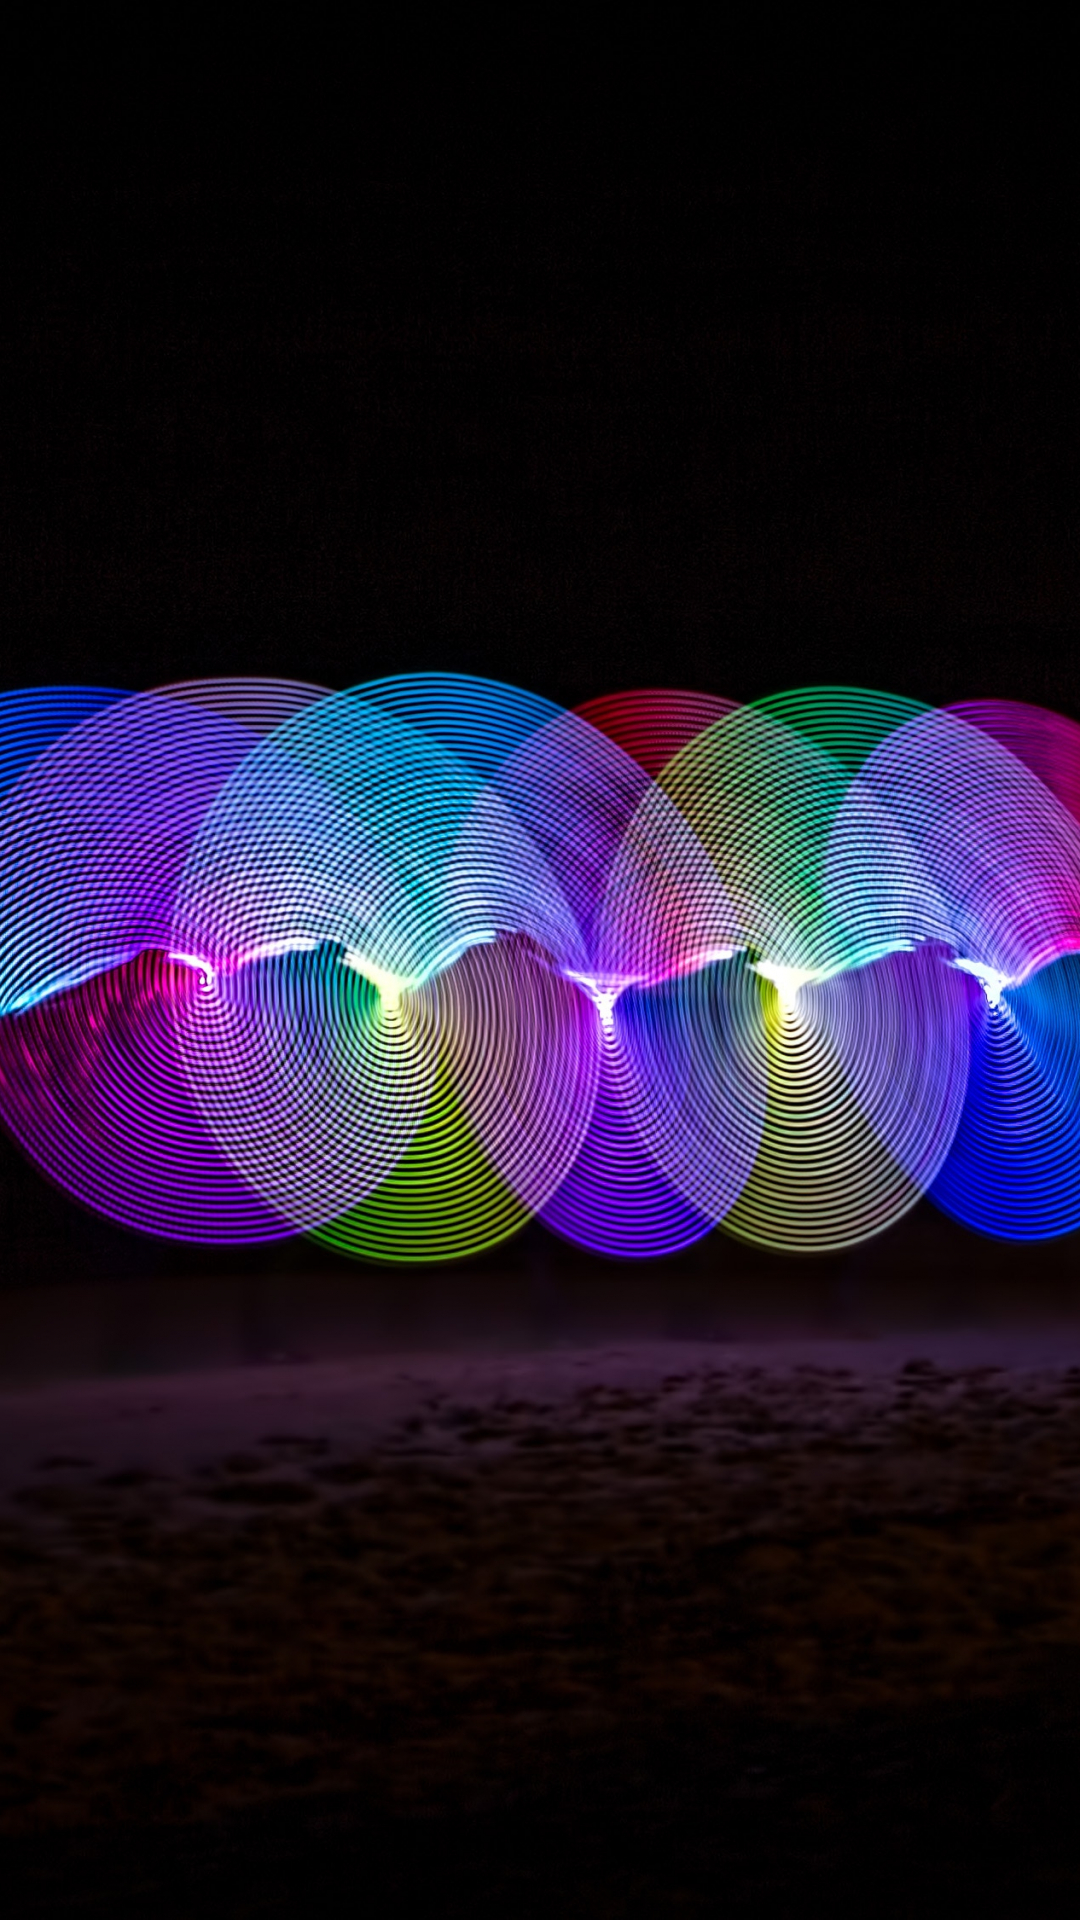 iphone wallpaperCircles Of Light Abstract